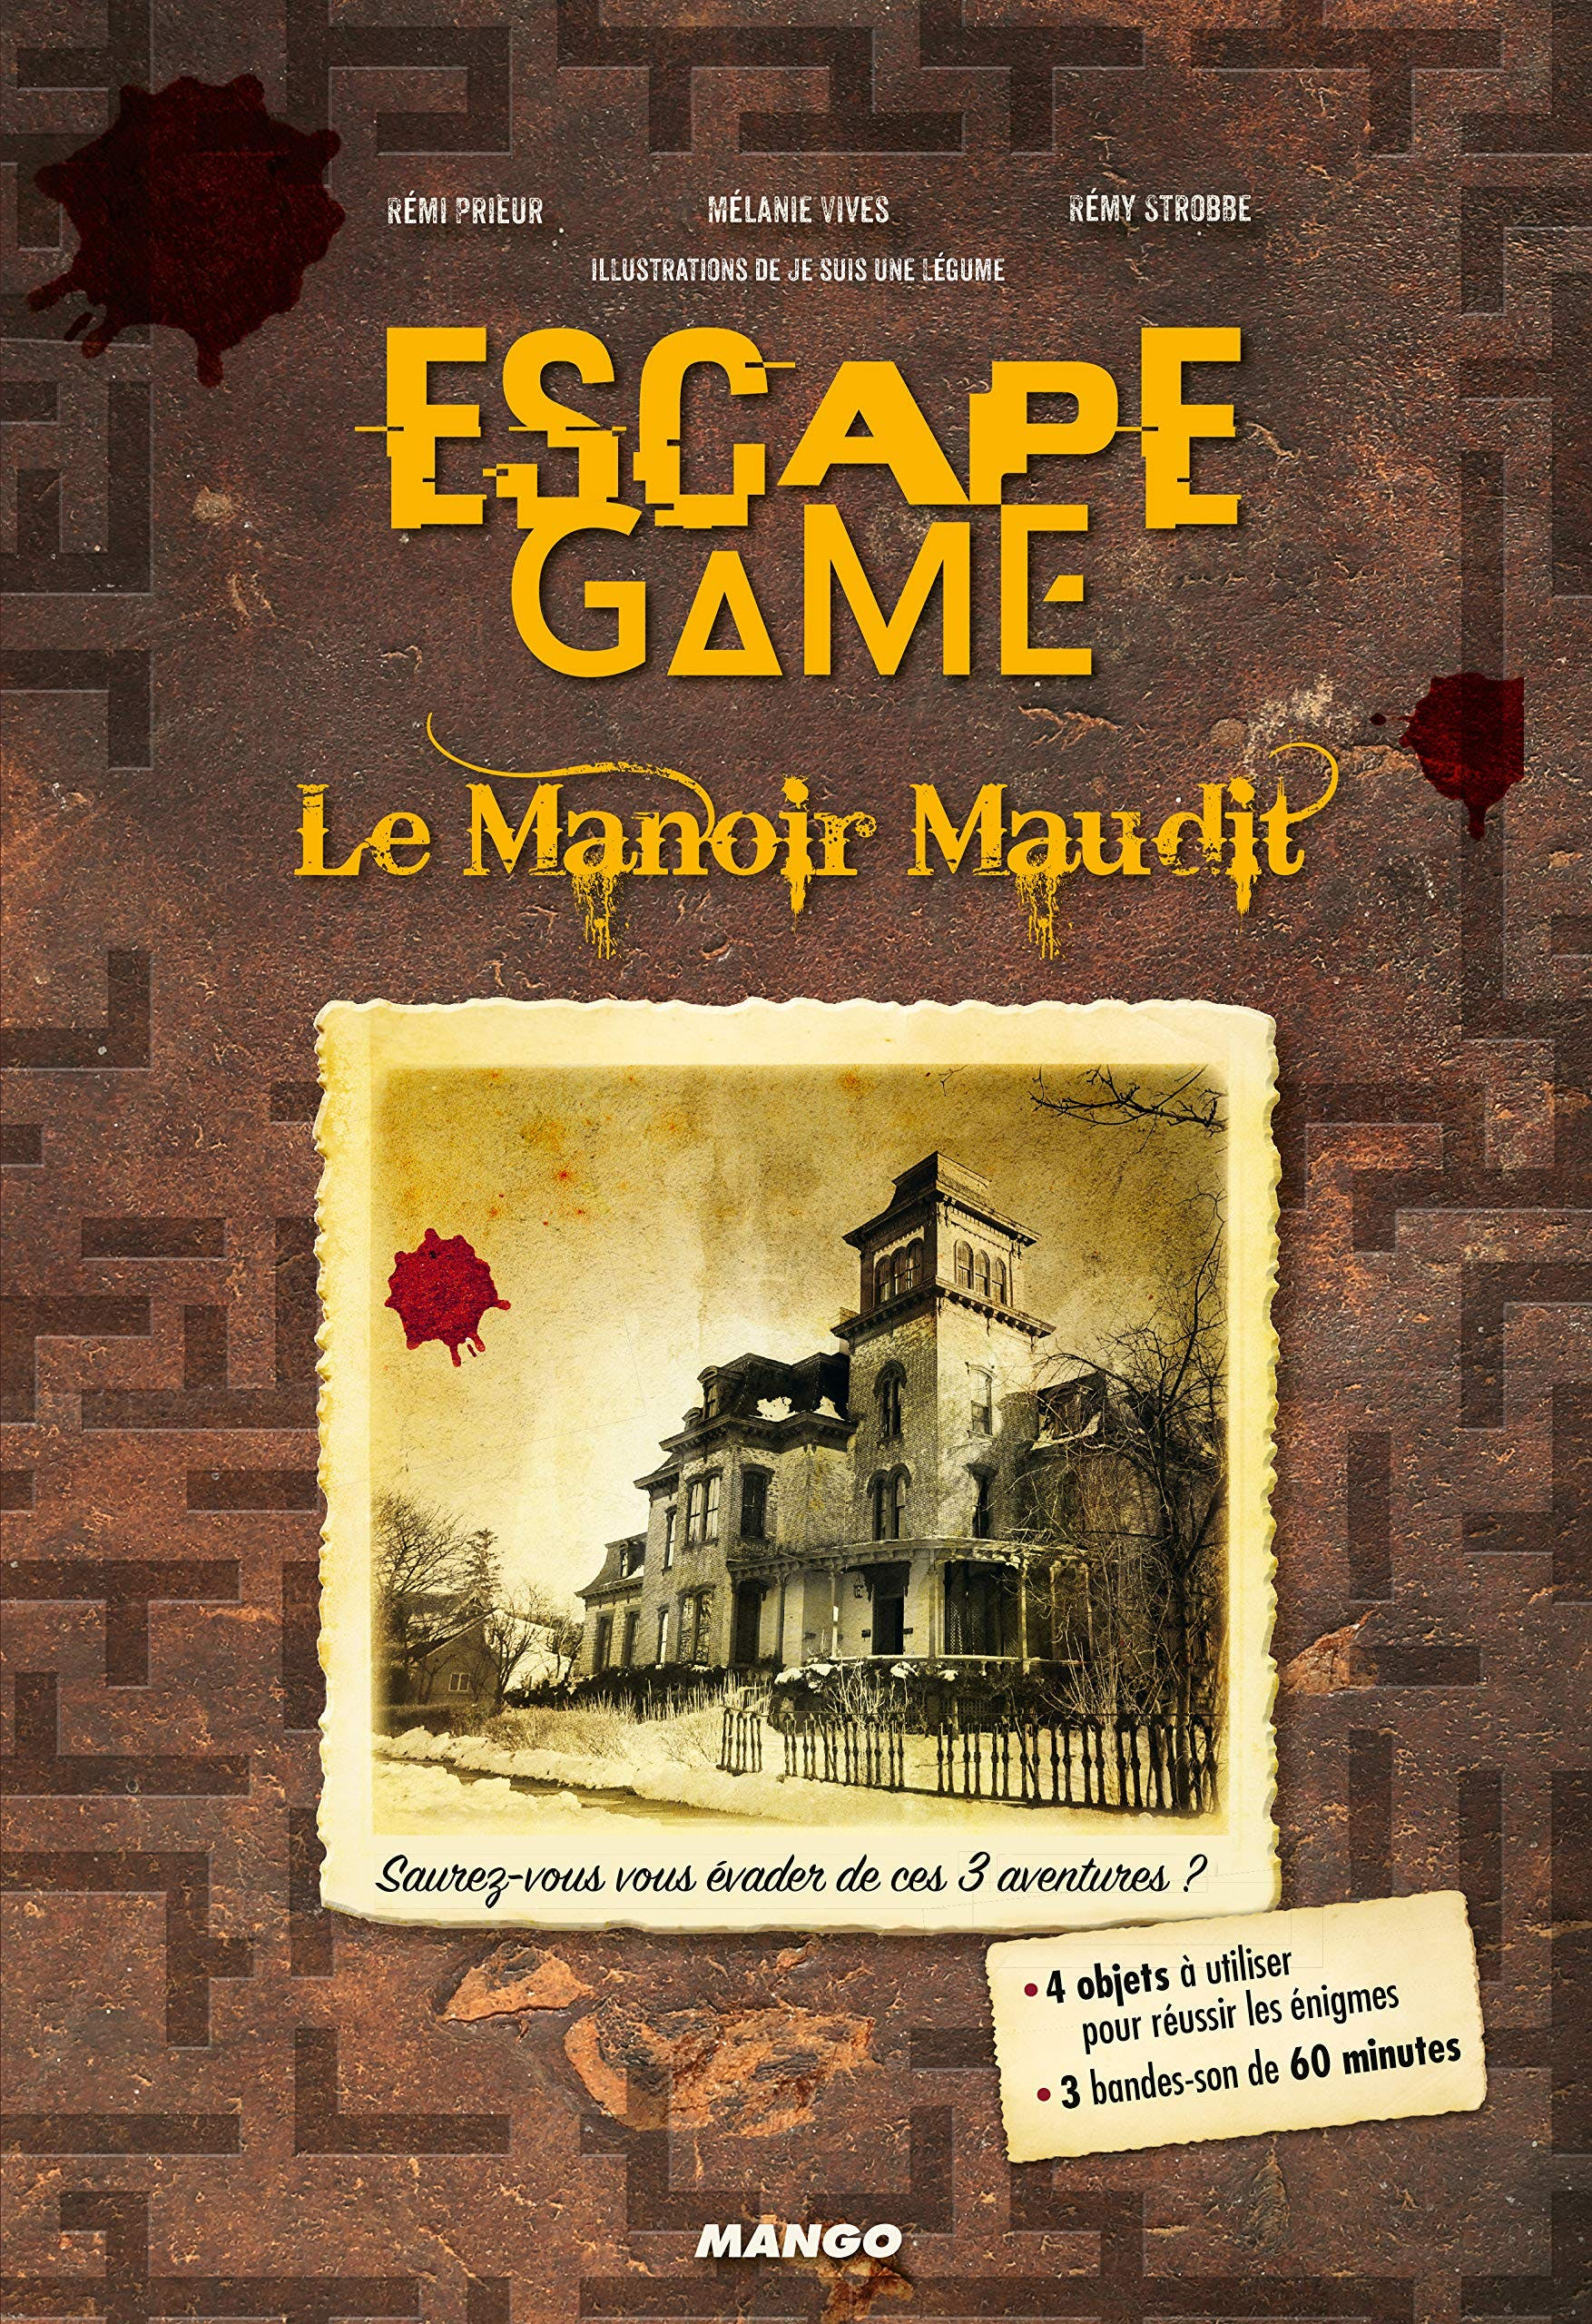 Escape Game Manoir